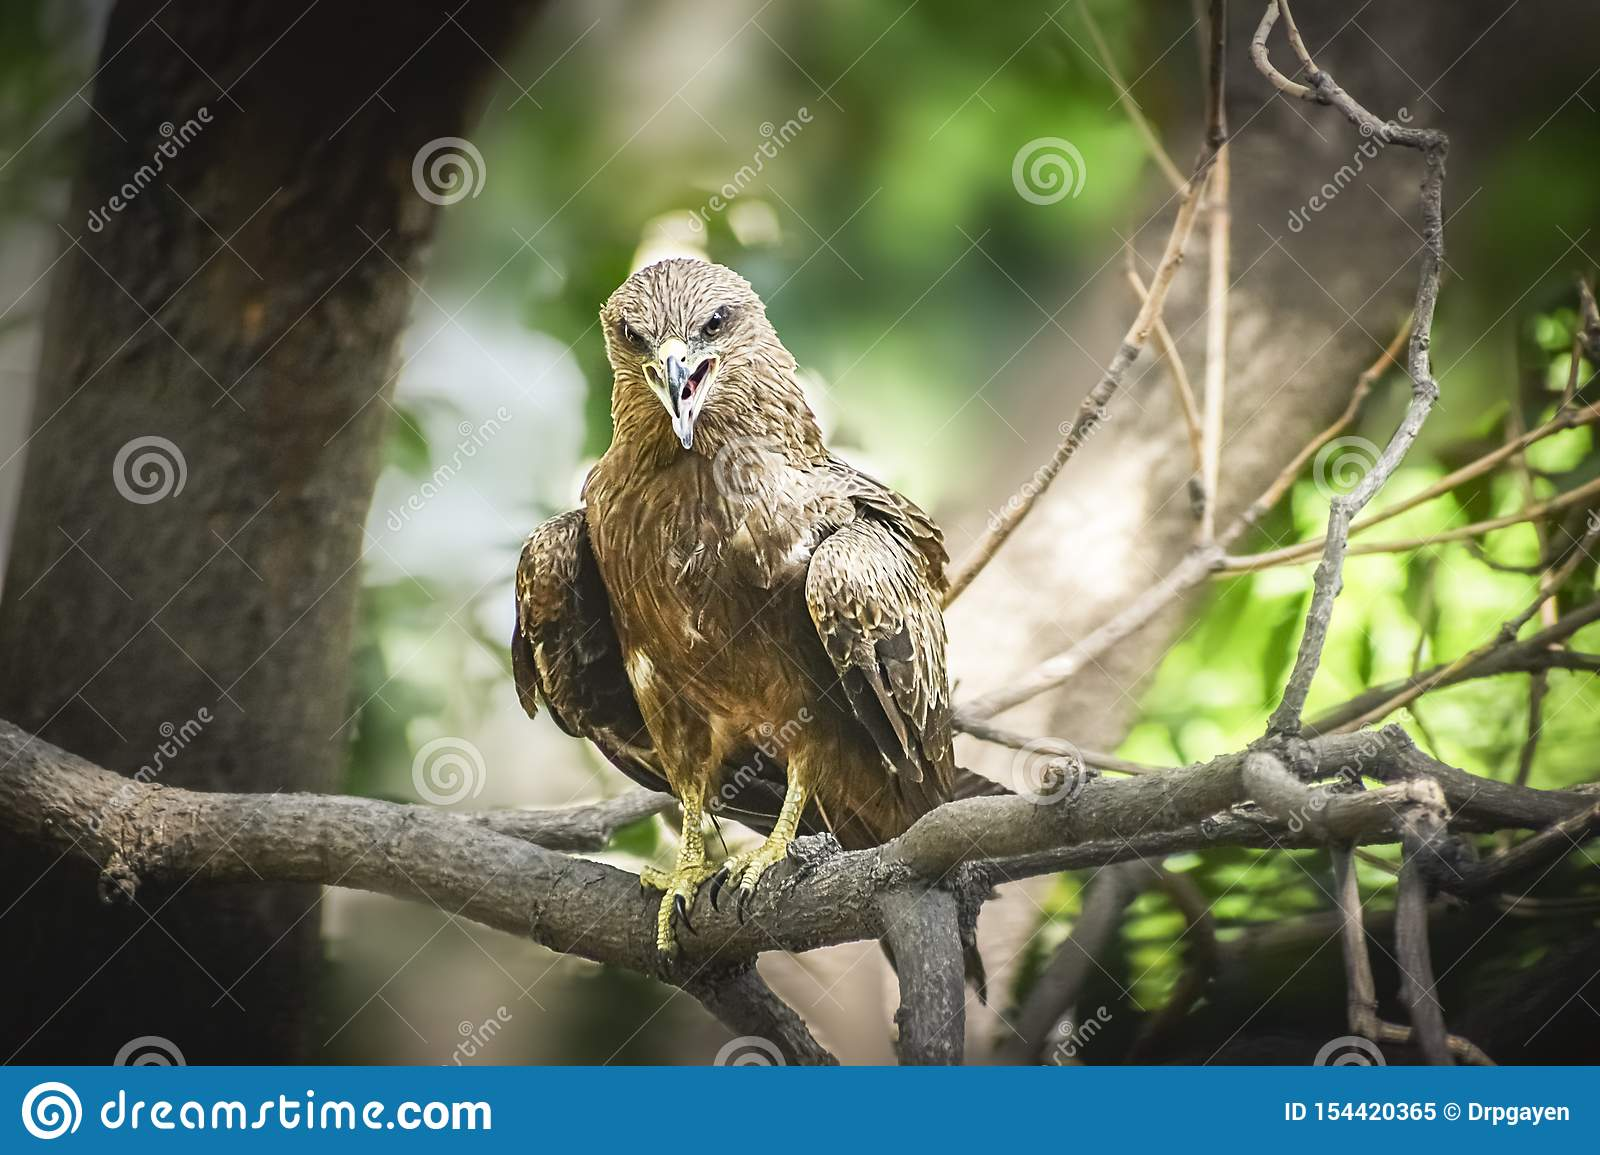 Indian Eagle,the Kite sitting on the tree branch in the defth of field picture. India